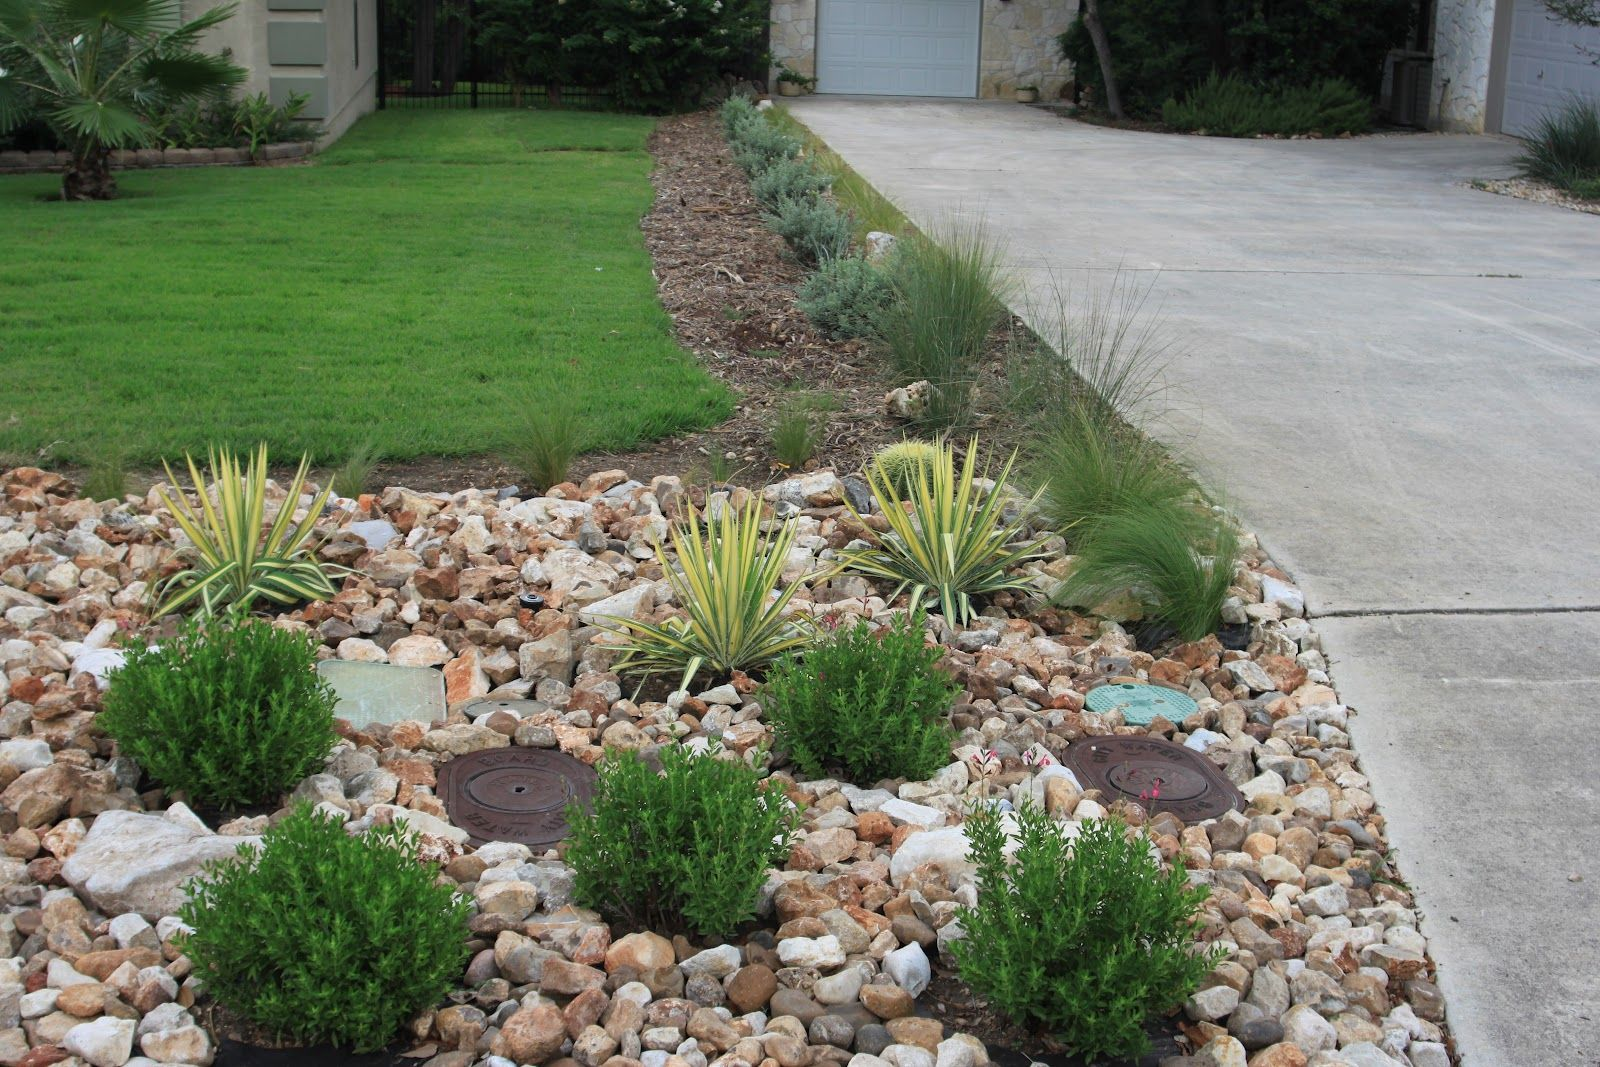 Rock Oak Deer Driveway Landscaping Completed Front Lawn Landscaping Small Front Yard Landscaping Landscaping With Rocks